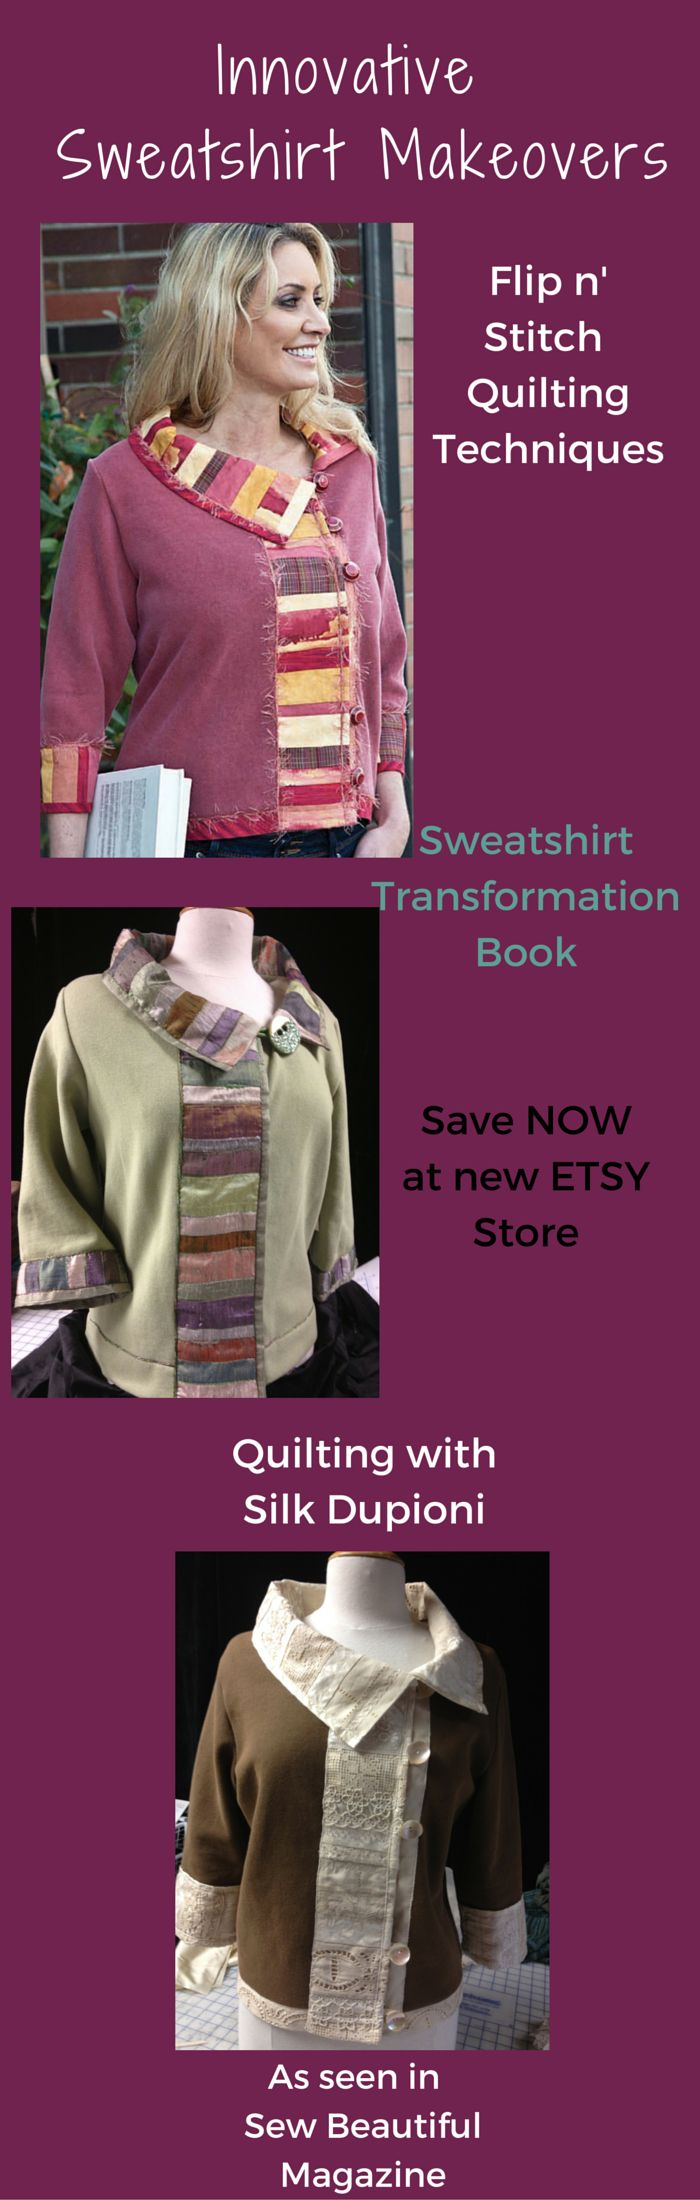 Flip n' Stitch quilting techniques to sew a sweatshirt makeover with this sewing pattern book of 8 sweatshirt transformation designs.  https://www.etsy.com/listing/259030600/sweatshirt-transformations-sweatshirt?ref=shop_home_active_3